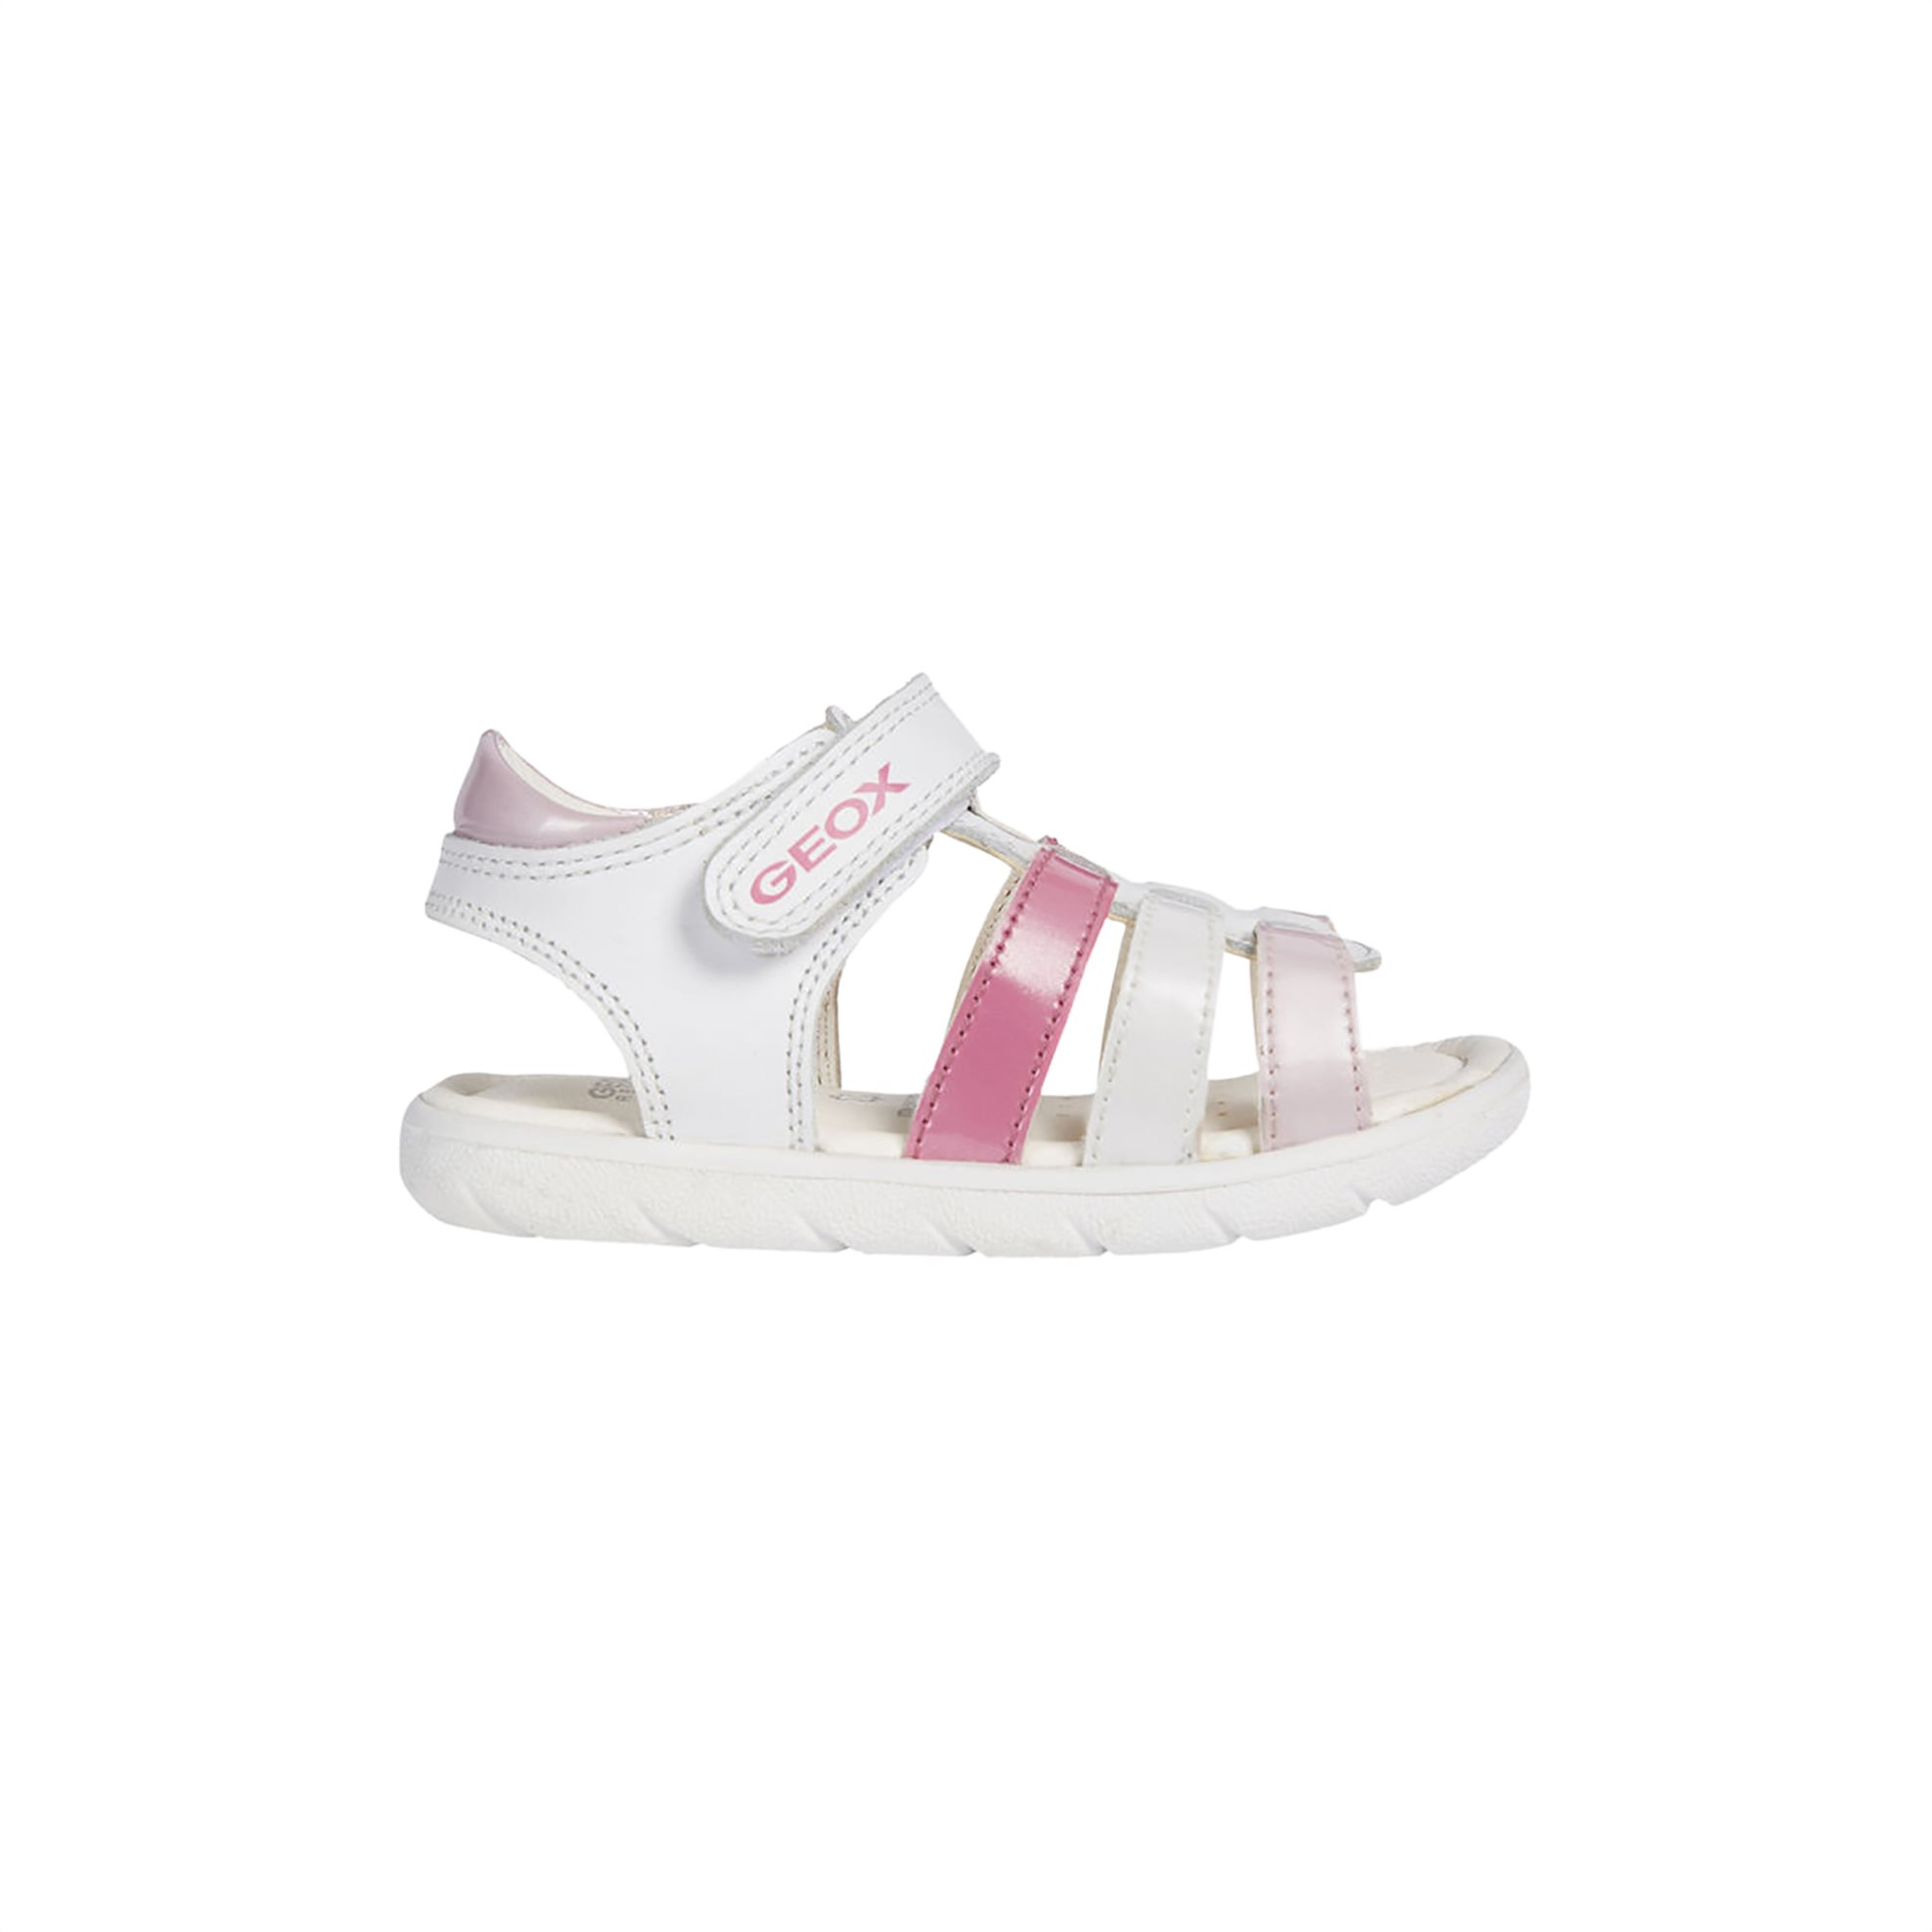 55f1b79969a Geox βρεφικό μποτάκι Baby New Balu Girl - B840QD - Ροζ | Fashion Voucher